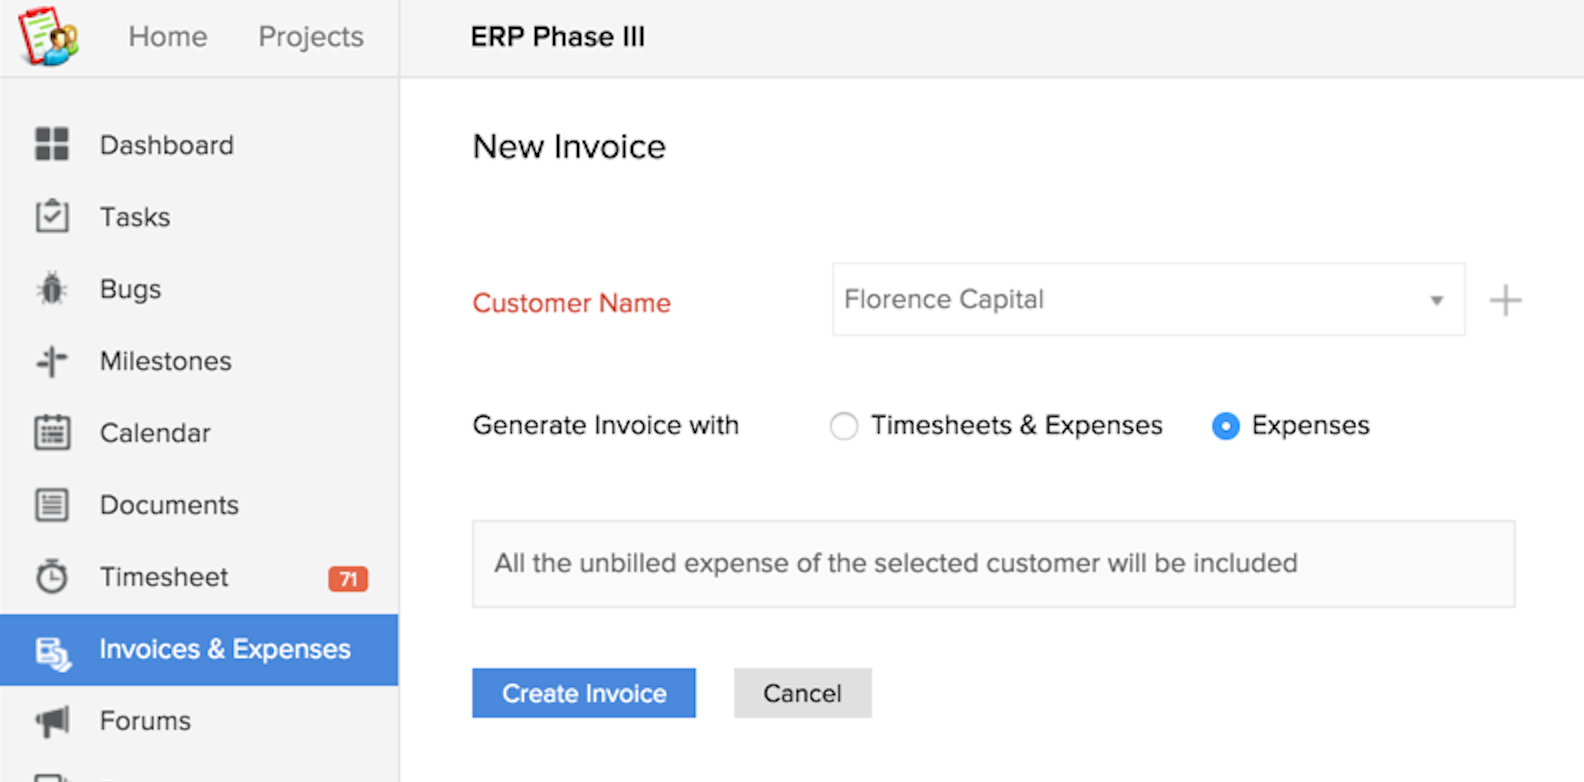 Ebitus  Pleasant Invoices And Expenses  Online Help  Zoho Projects With Outstanding Invoiceviaexpenses With Beauteous Personal Invoice Template Word Also What Is The Difference Between Invoice And Msrp In Addition Invoice Discount Terms And Example Of A Invoice As Well As Work Invoice Template Free Additionally Invoice For Work From Zohocom With Ebitus  Outstanding Invoices And Expenses  Online Help  Zoho Projects With Beauteous Invoiceviaexpenses And Pleasant Personal Invoice Template Word Also What Is The Difference Between Invoice And Msrp In Addition Invoice Discount Terms From Zohocom